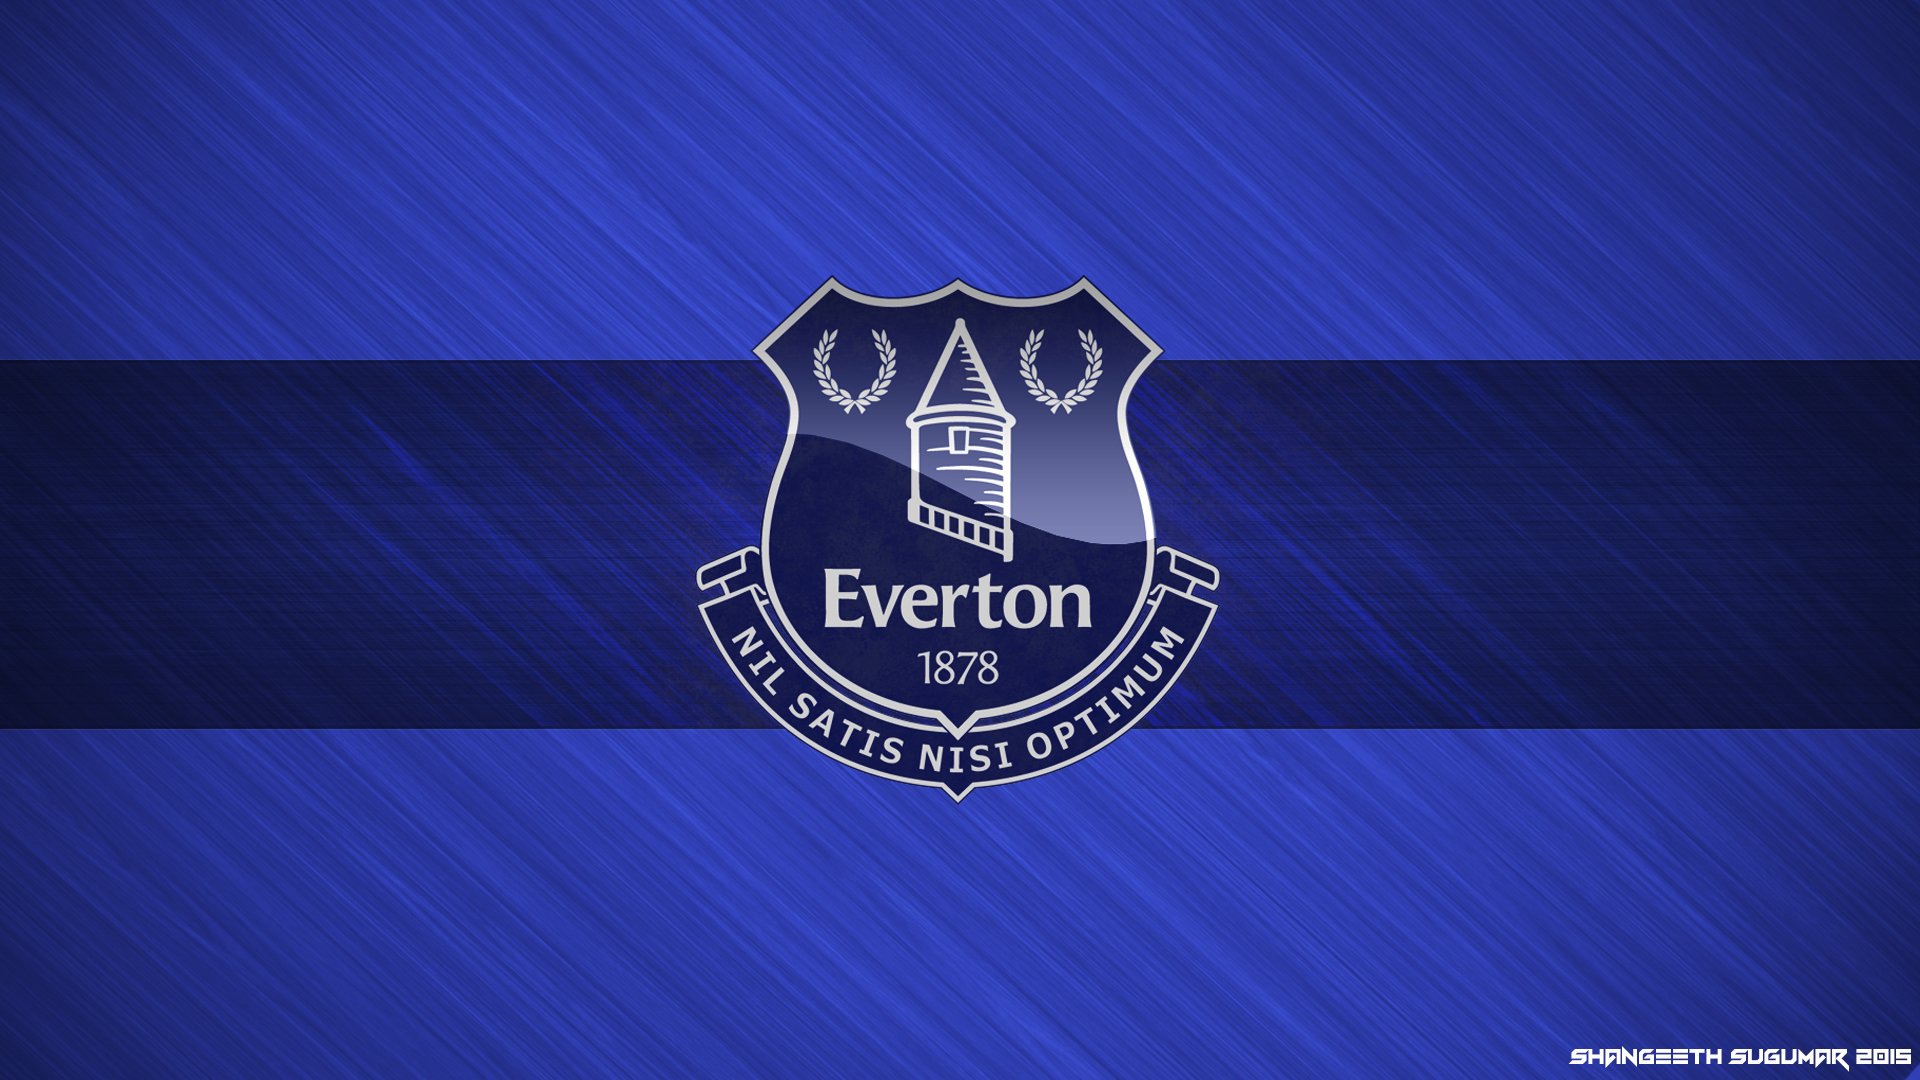 Download Everton FC Wallpaper and Windows 10 Theme All for Windows 1920x1080